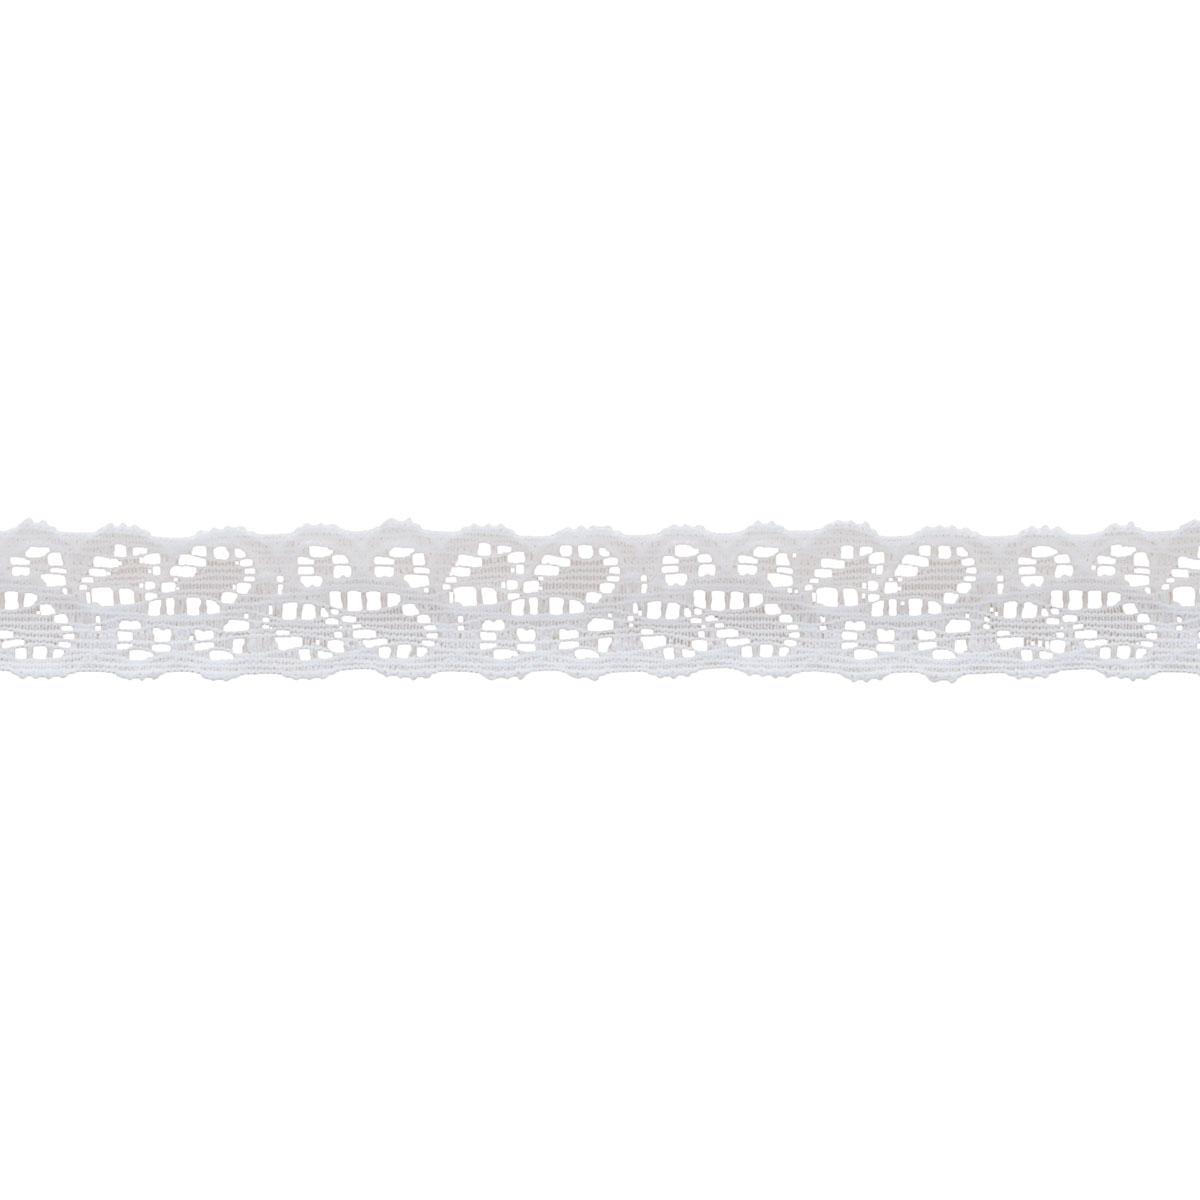 1/2 STRETCH GALLOON LACE